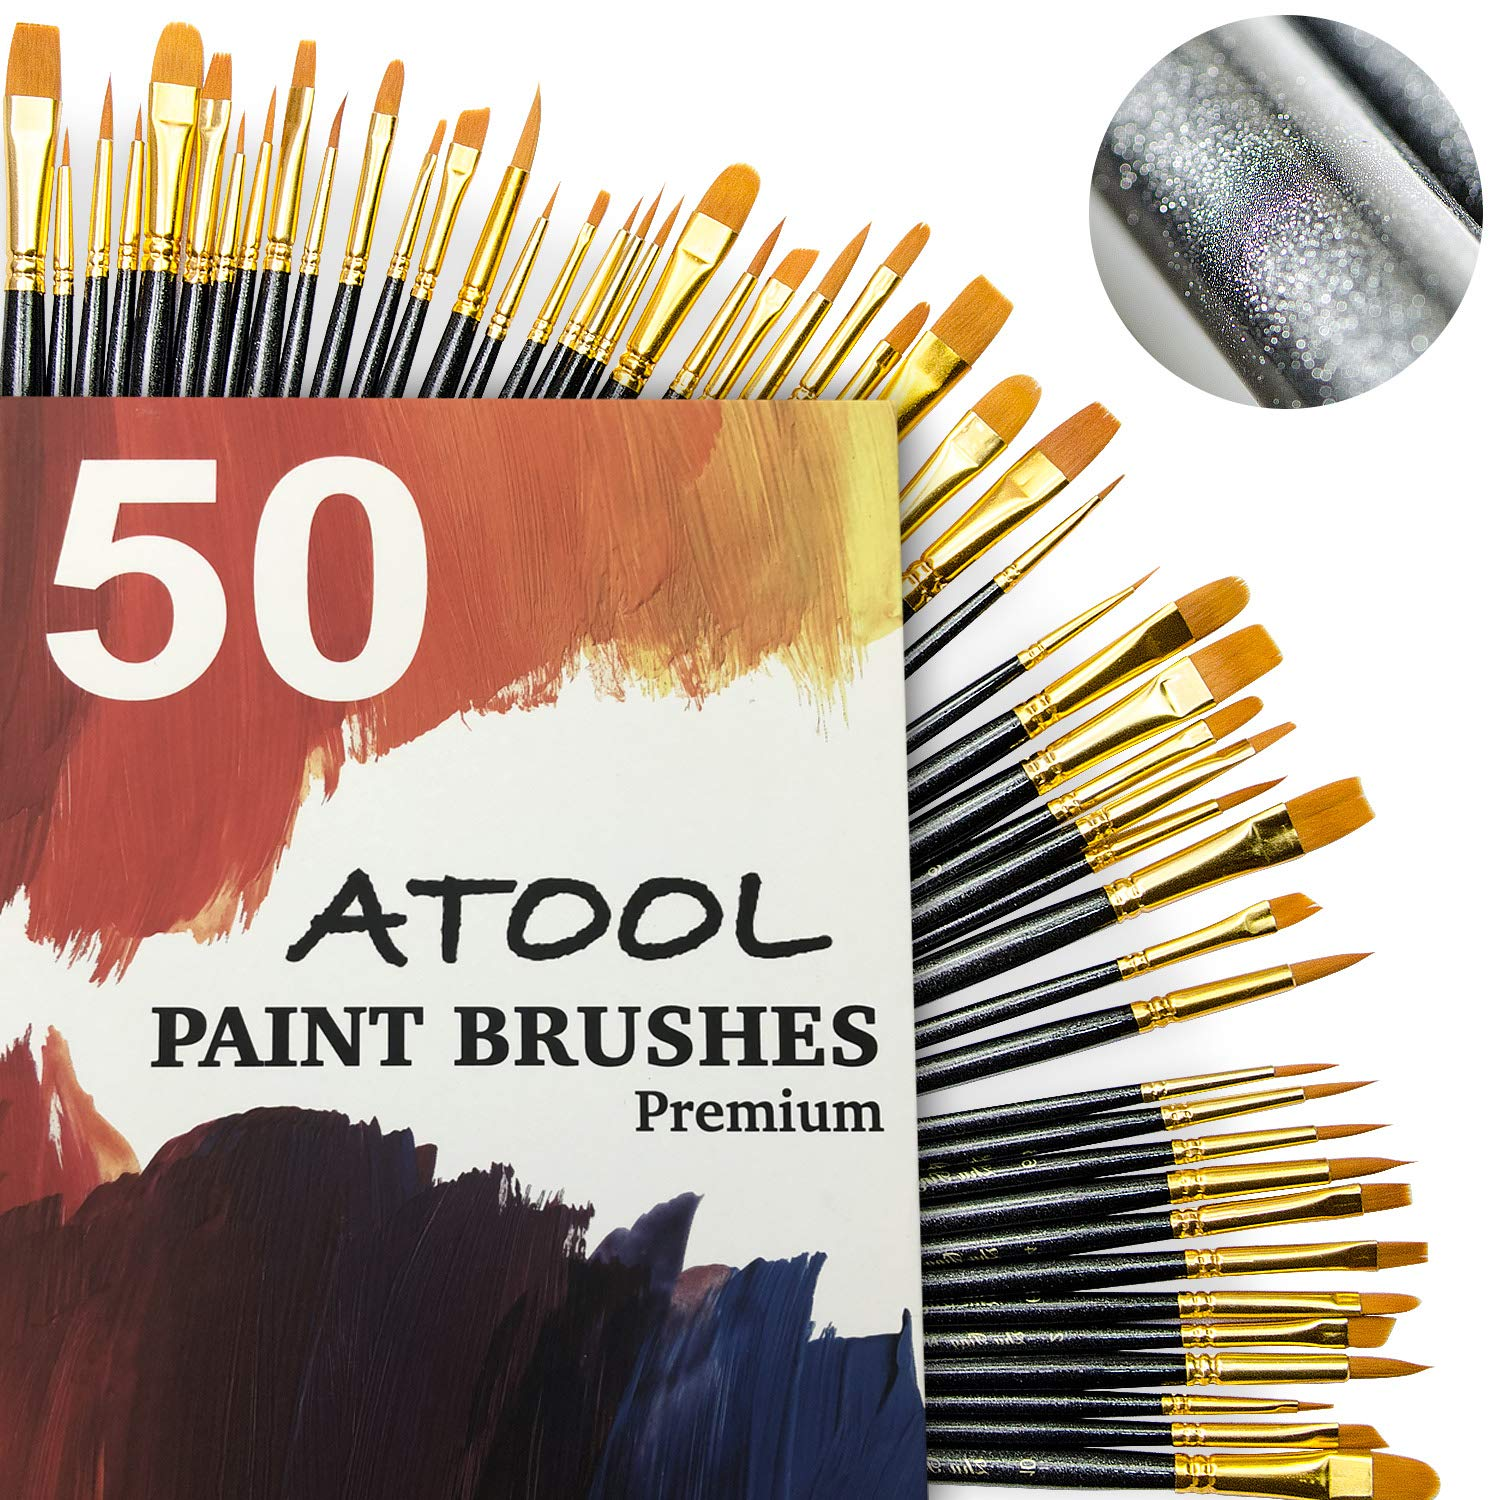 Paint Brush Set, Premium Nylon Hair Brushes for Acrylic Oil Watercolor Painting Artist Professional Painting Kits, Upgraded Galaxy Black 50 Pcs, 5 Pack by ATool